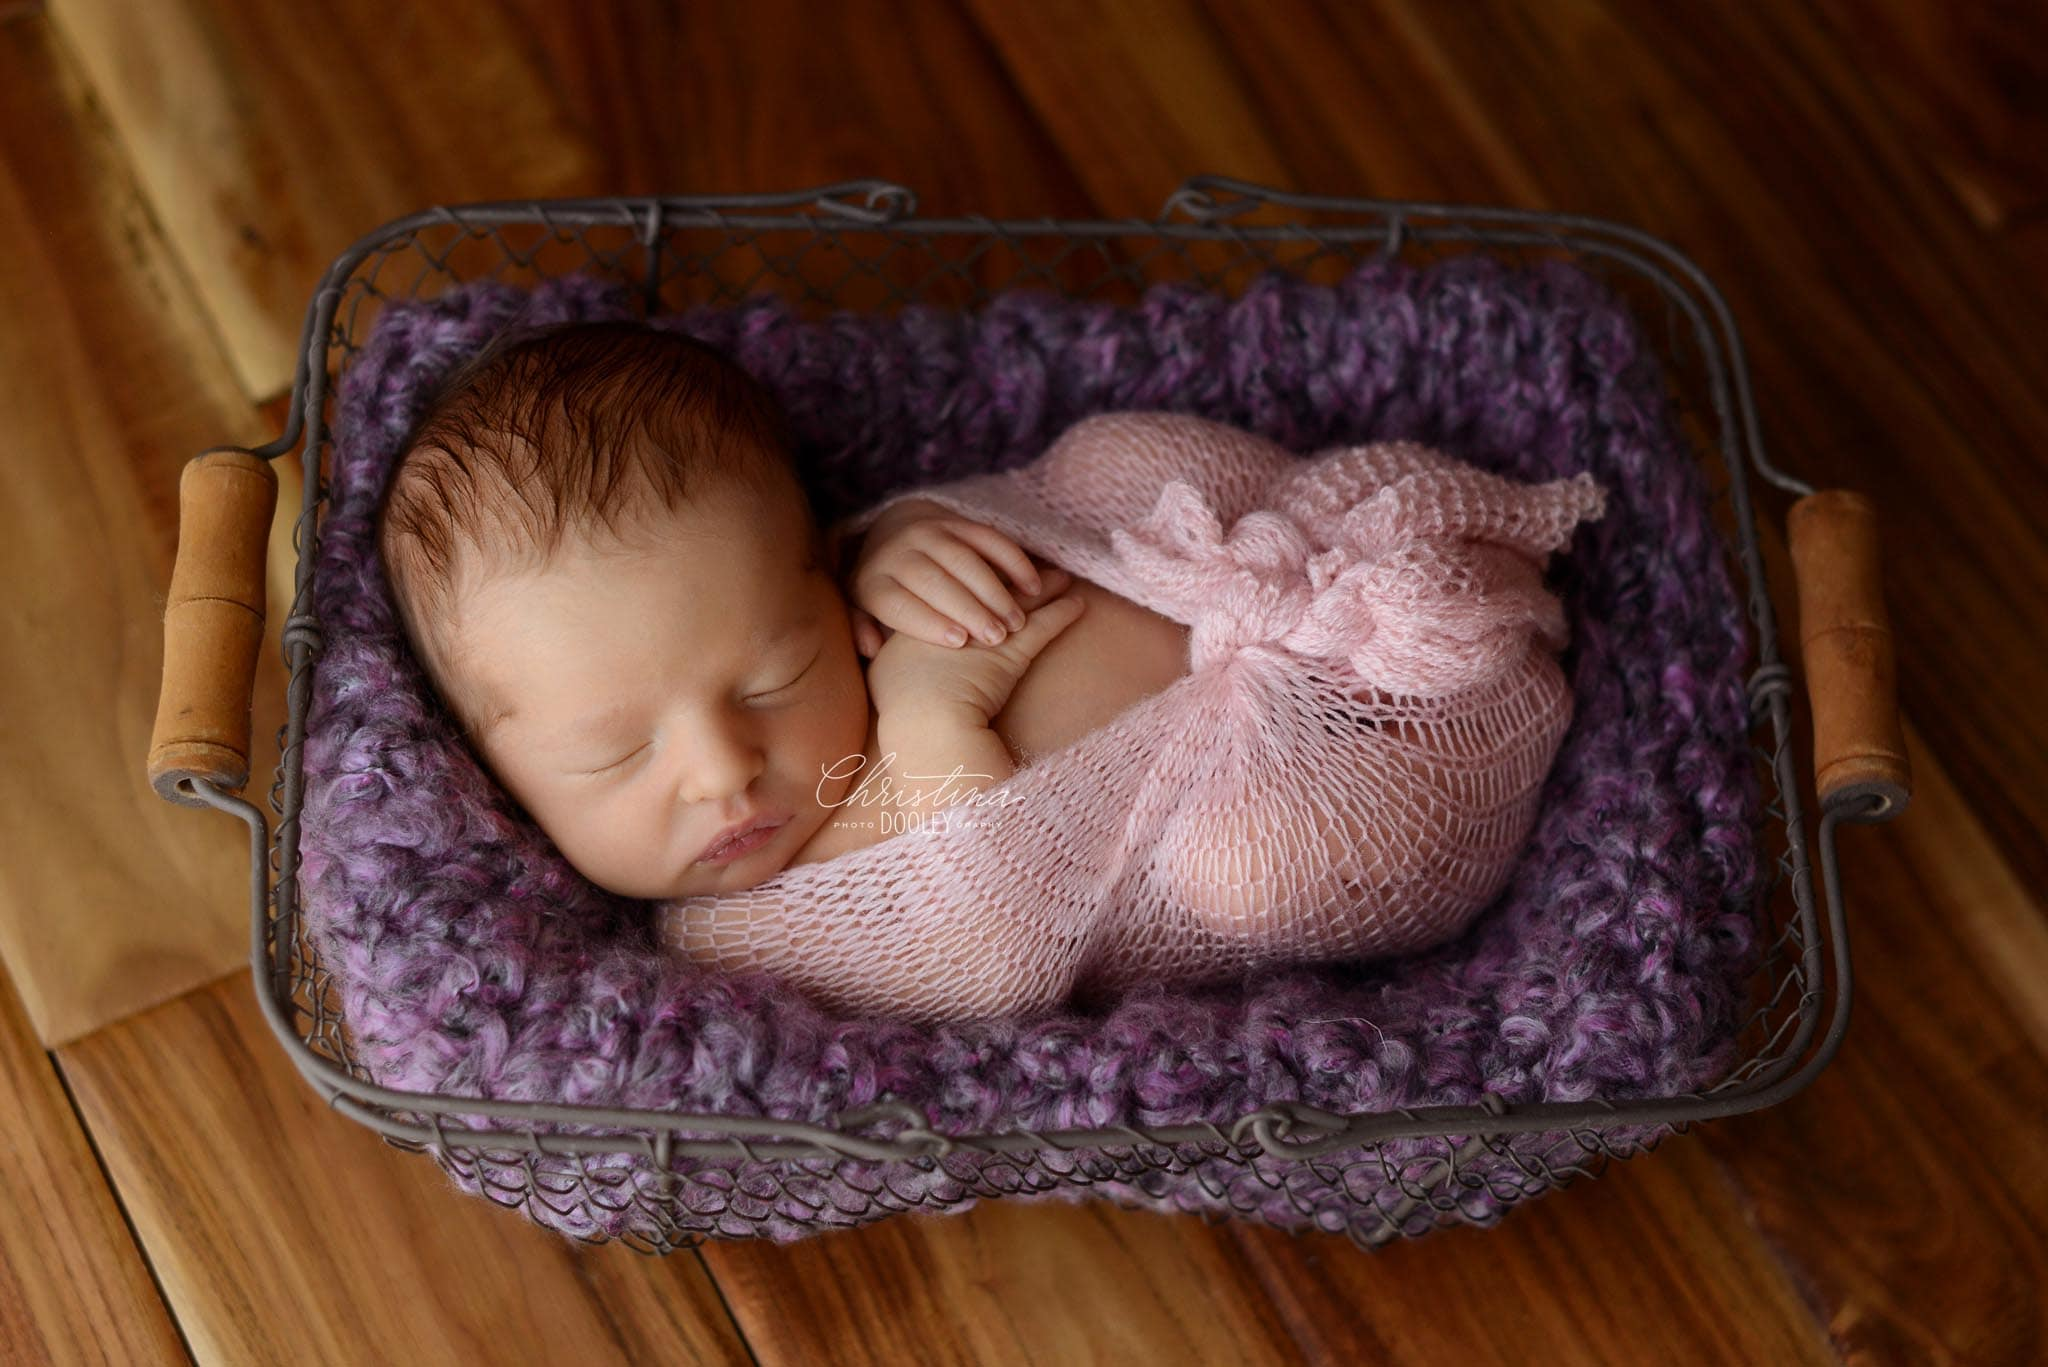 Black and White photo of baby girl in a wire basket